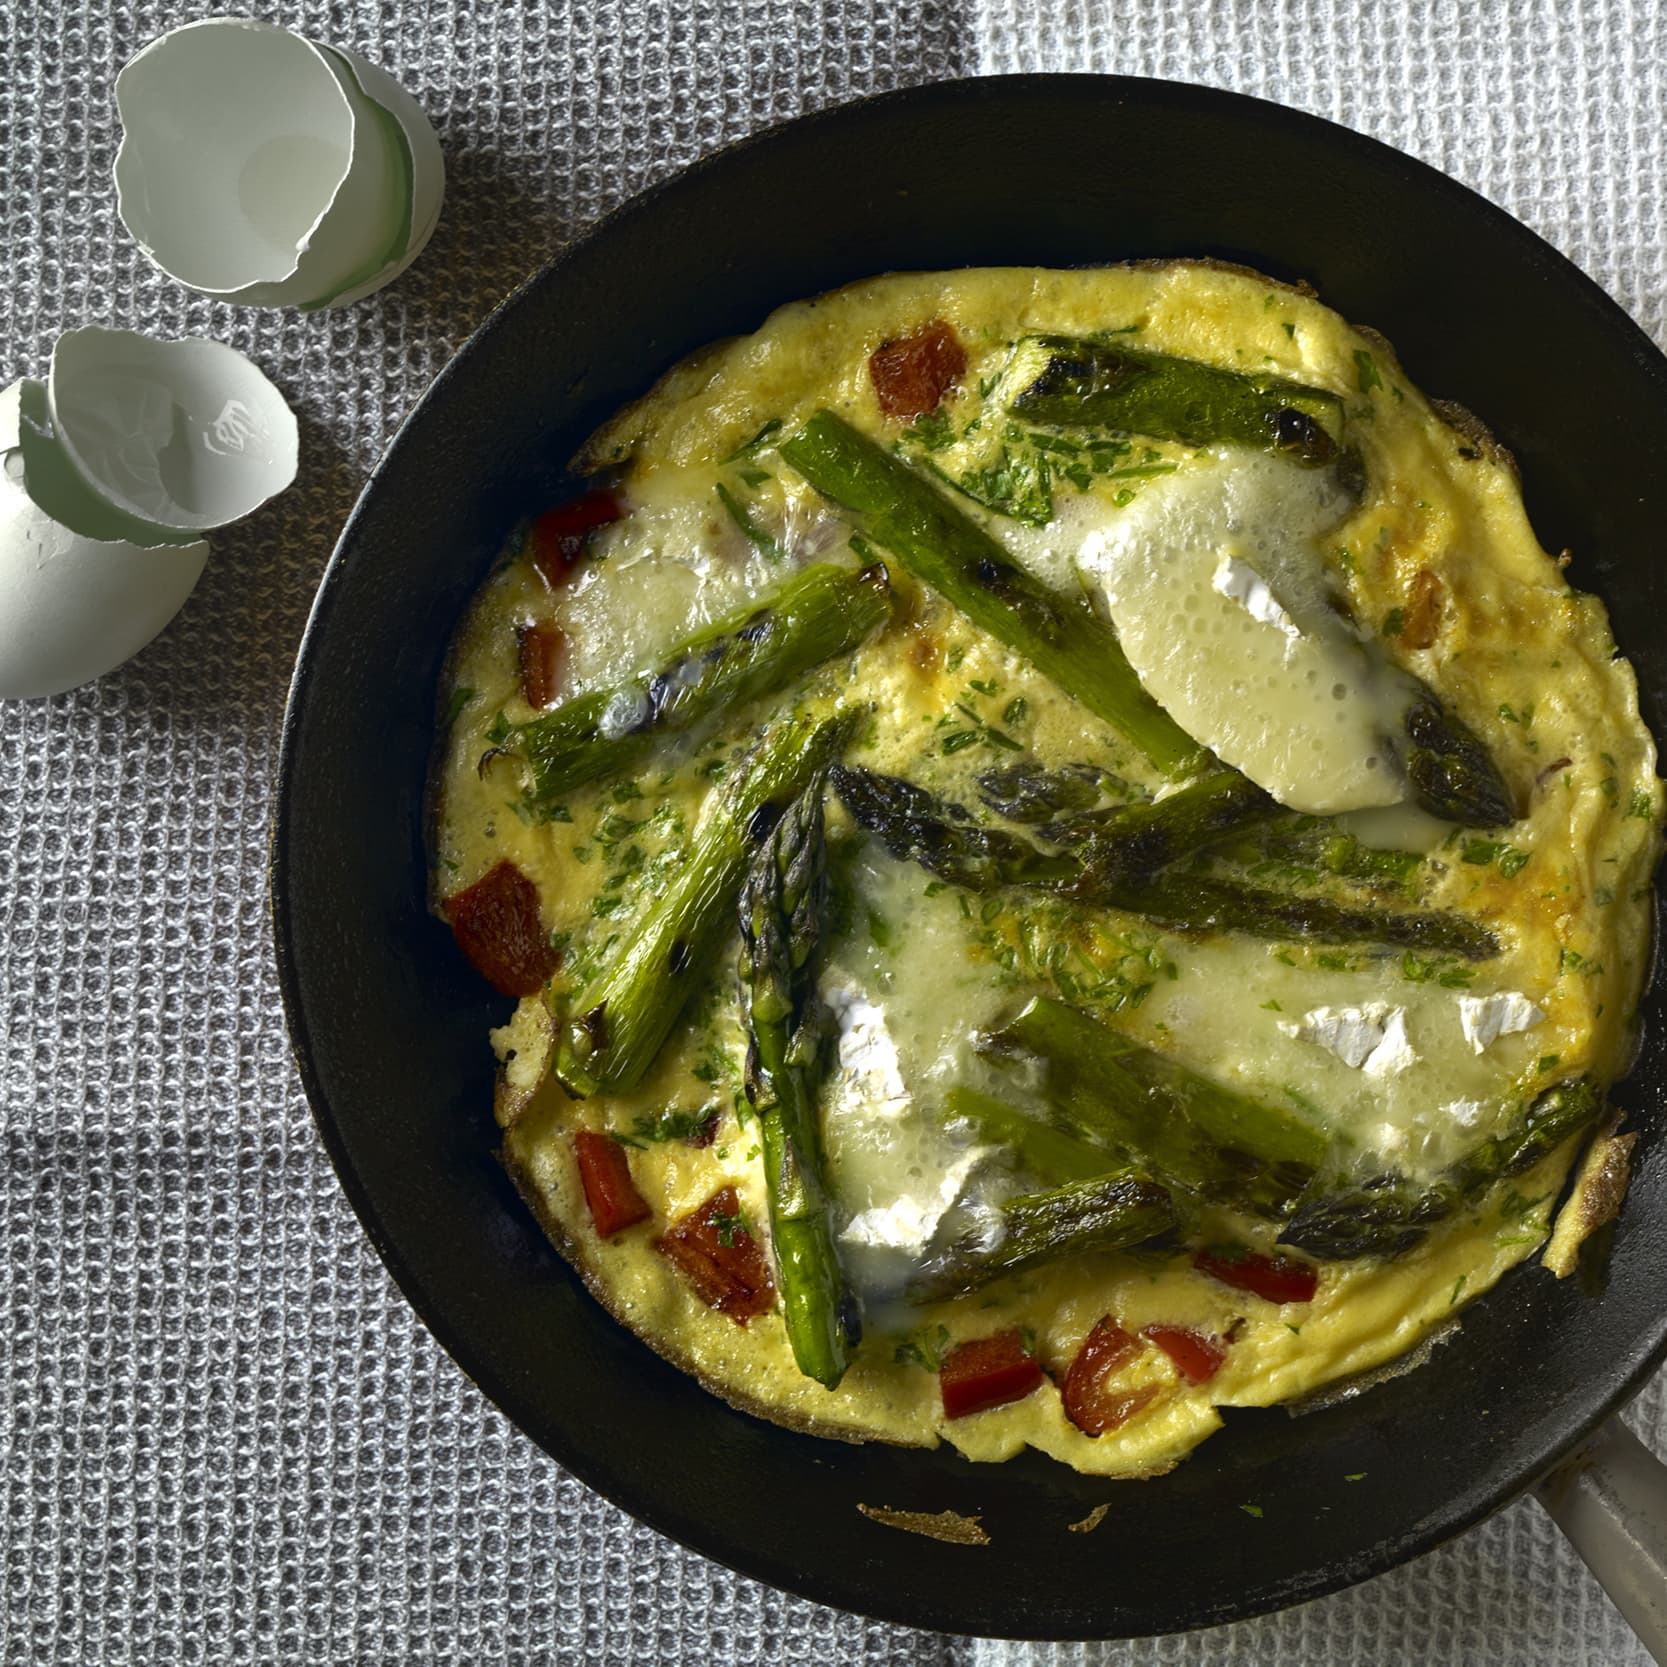 New season Asparagus and Brie omelette